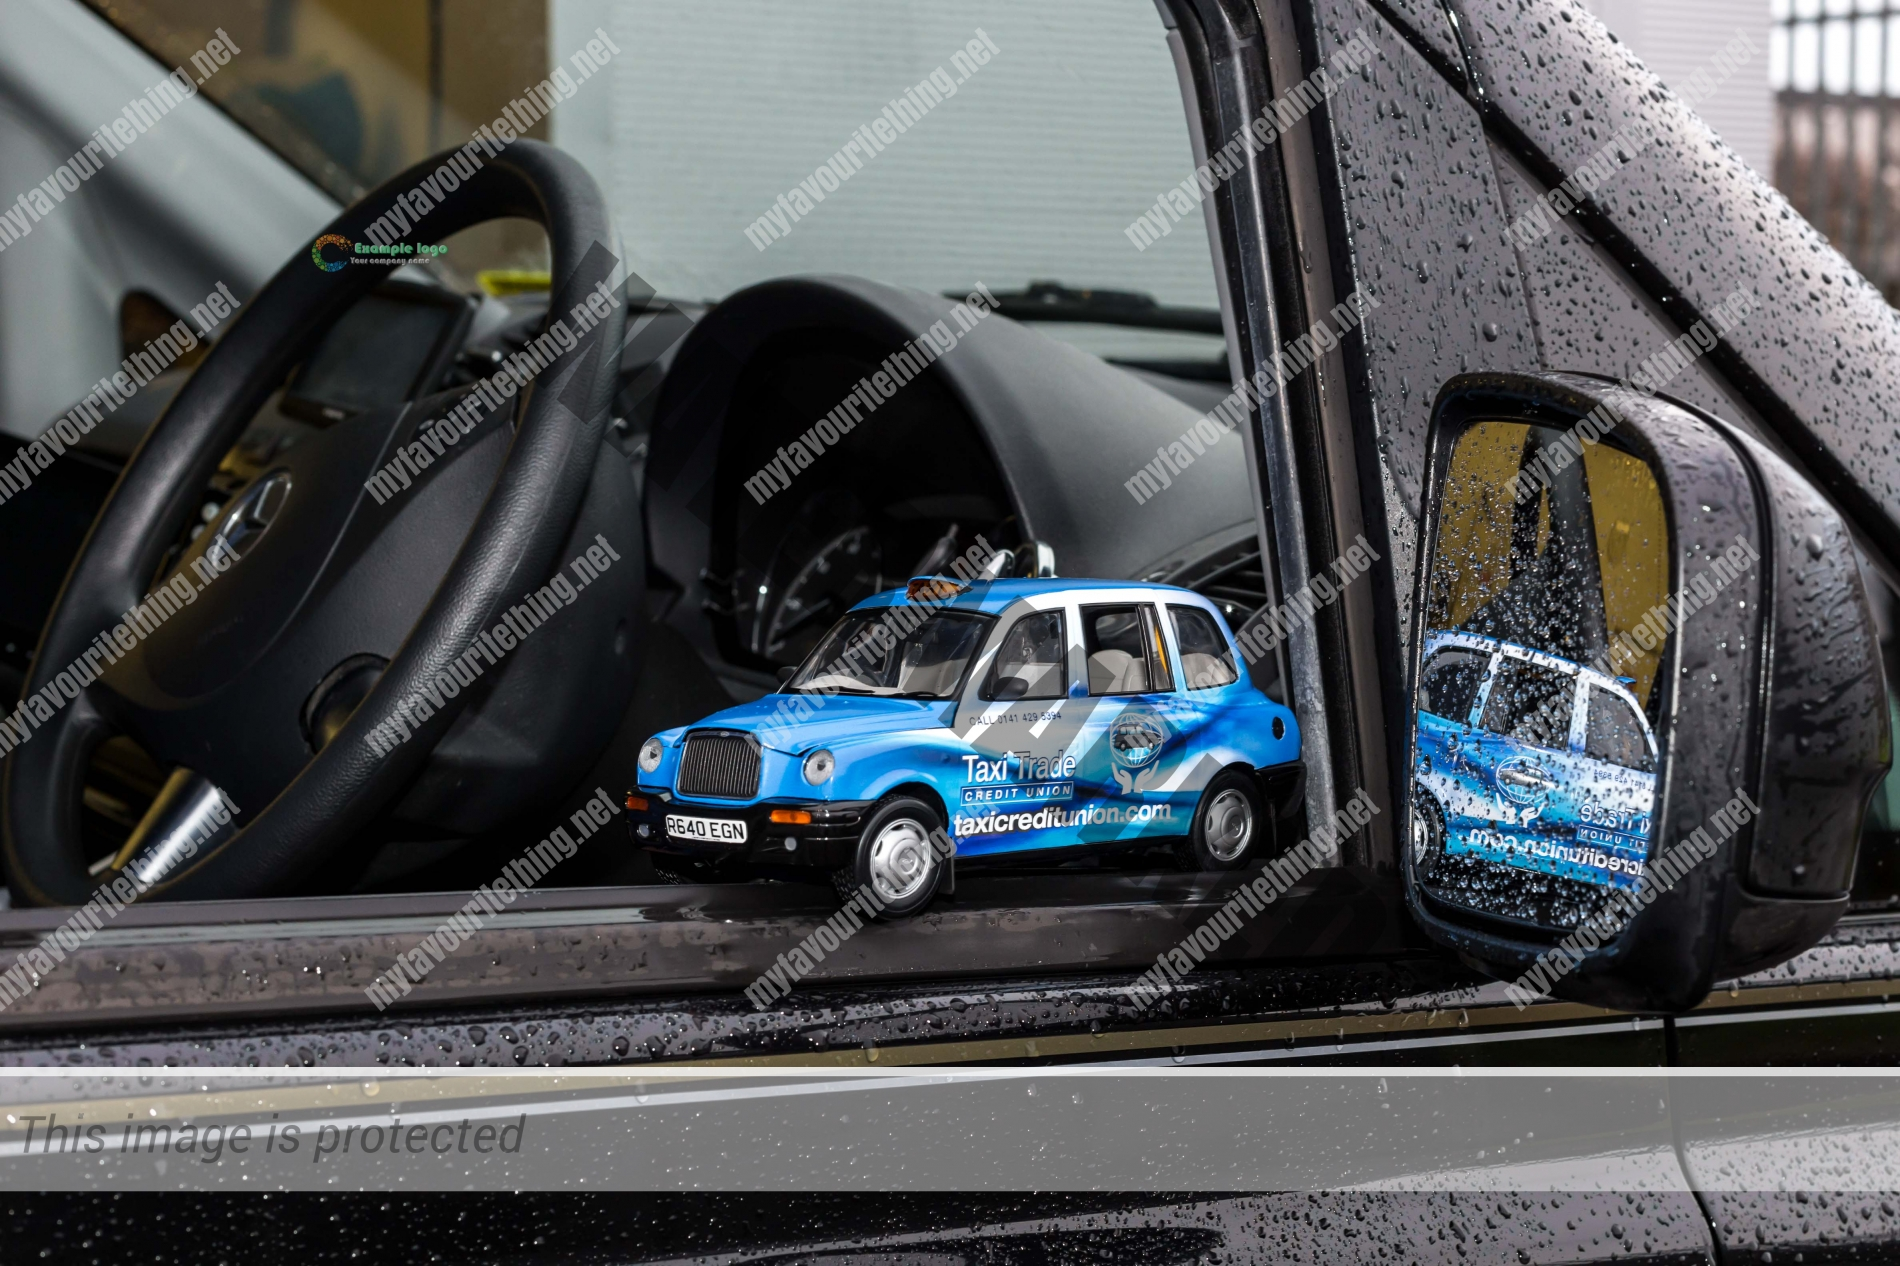 Taxi Trade Credit Union model taxi sitting on the window of a Glasgow taxi